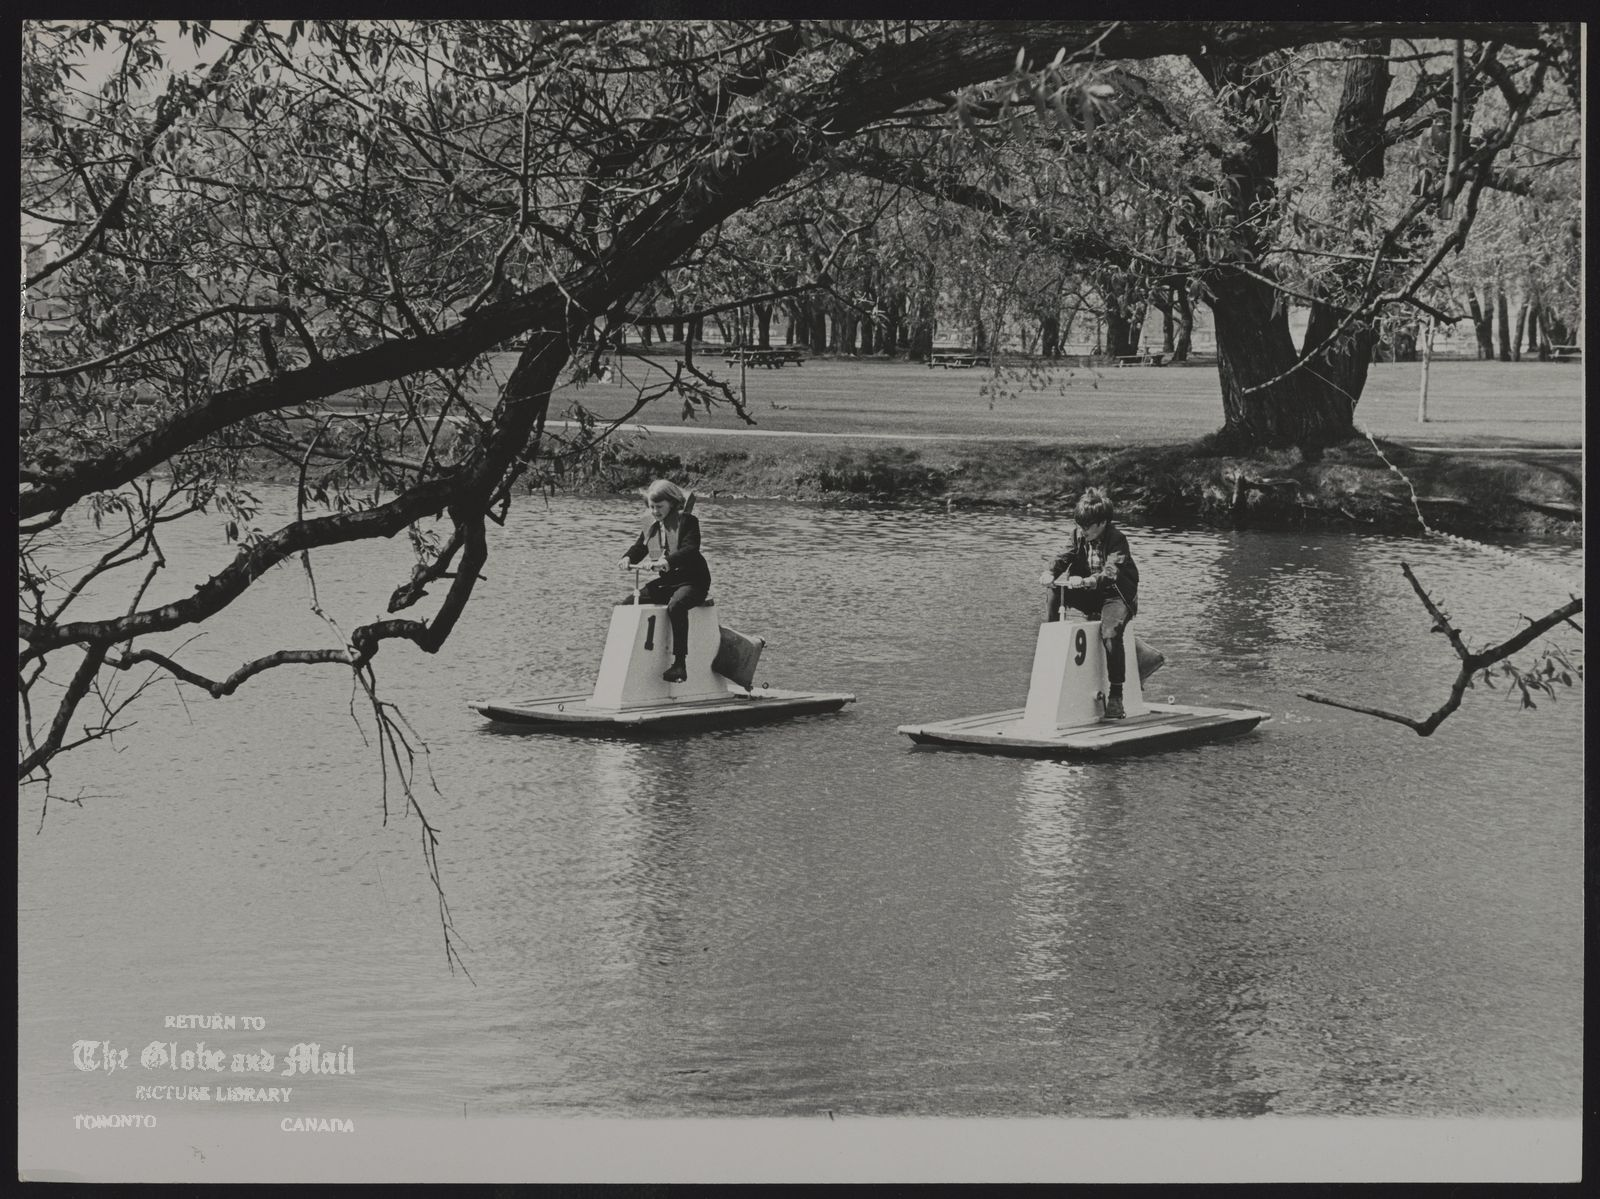 CENTRE ISLAND Children on pedal boats at Centre Island, May 21, 1968.